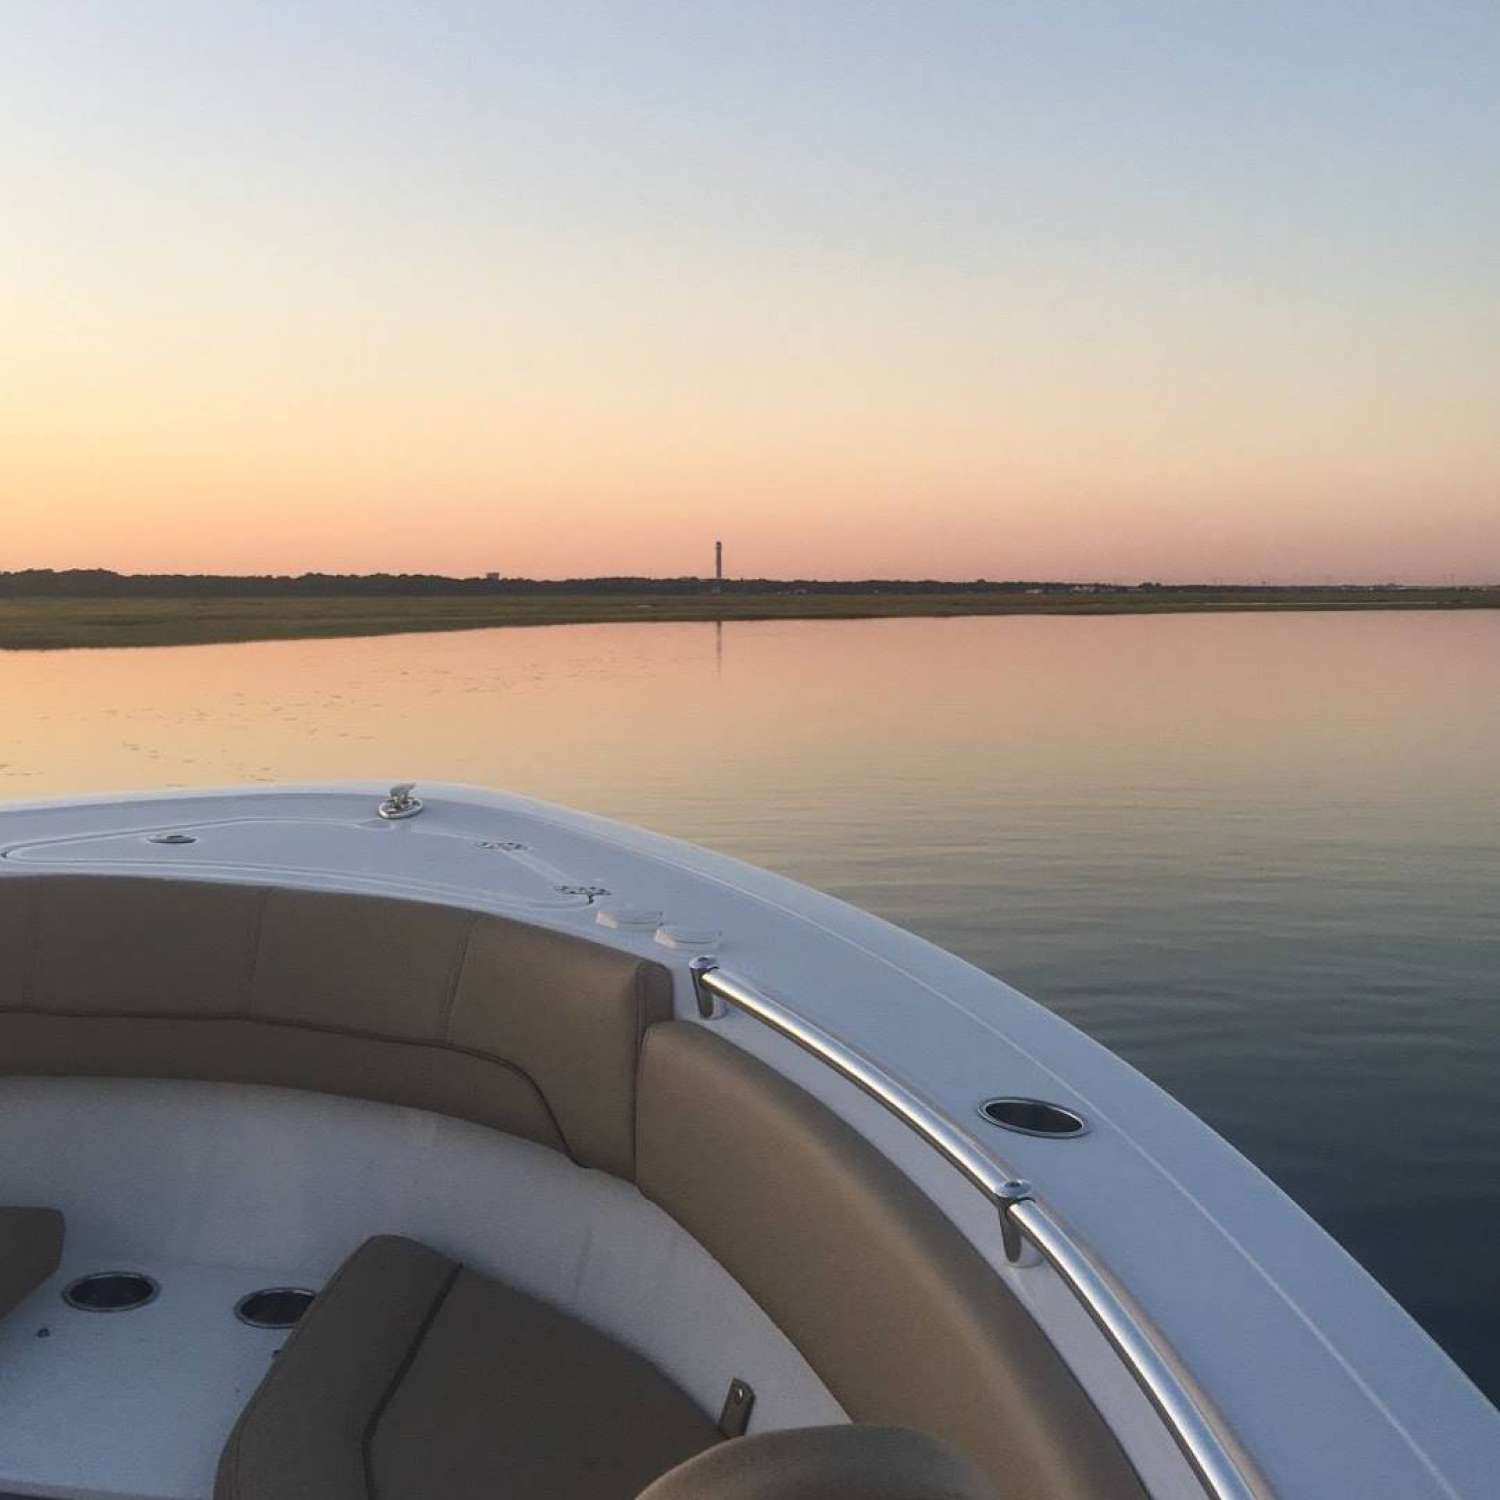 Title: Sunset Sportsman Ride - On board their Sportsman Open 252 Center Console - Location: Warrington, Pennsylvania. Participating in the Photo Contest #SportsmanAugust2017